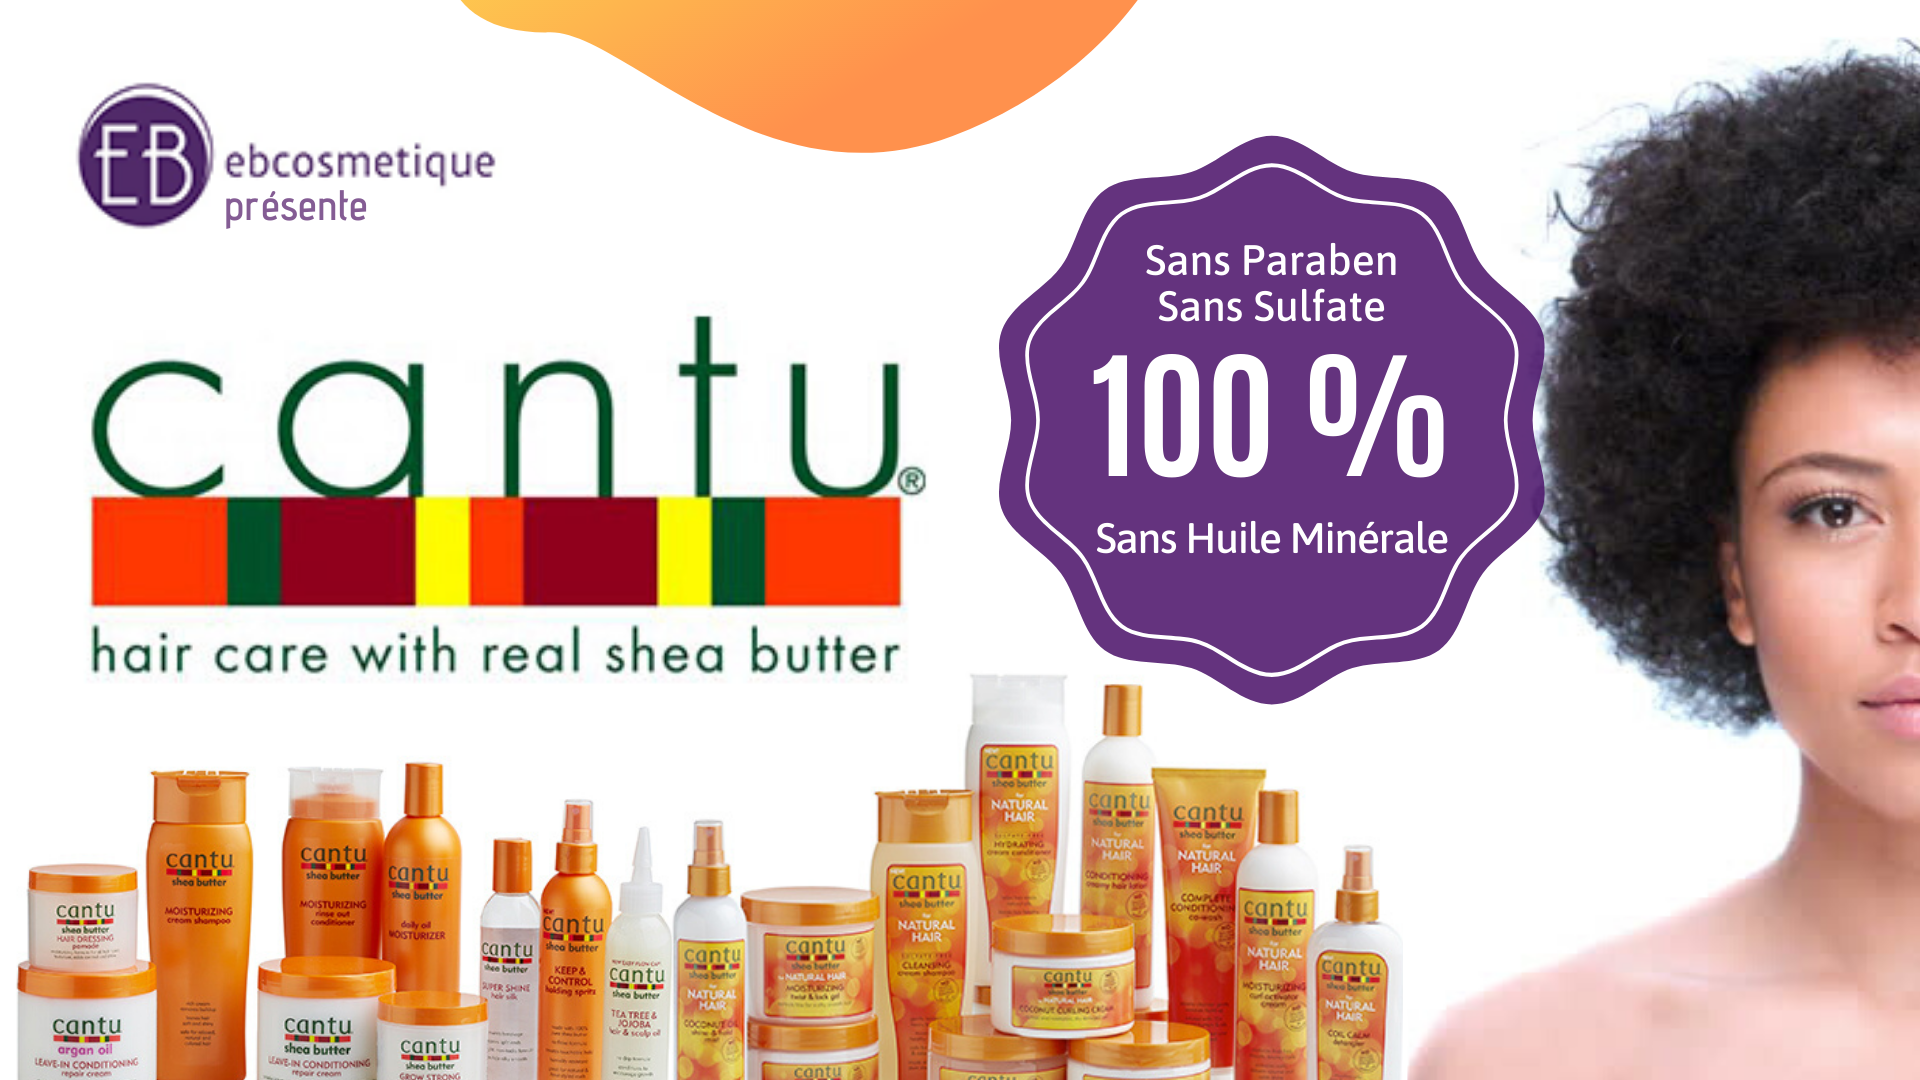 fiche produit ebcosmetique cantu shea butter natural hair daily hair moisturizer